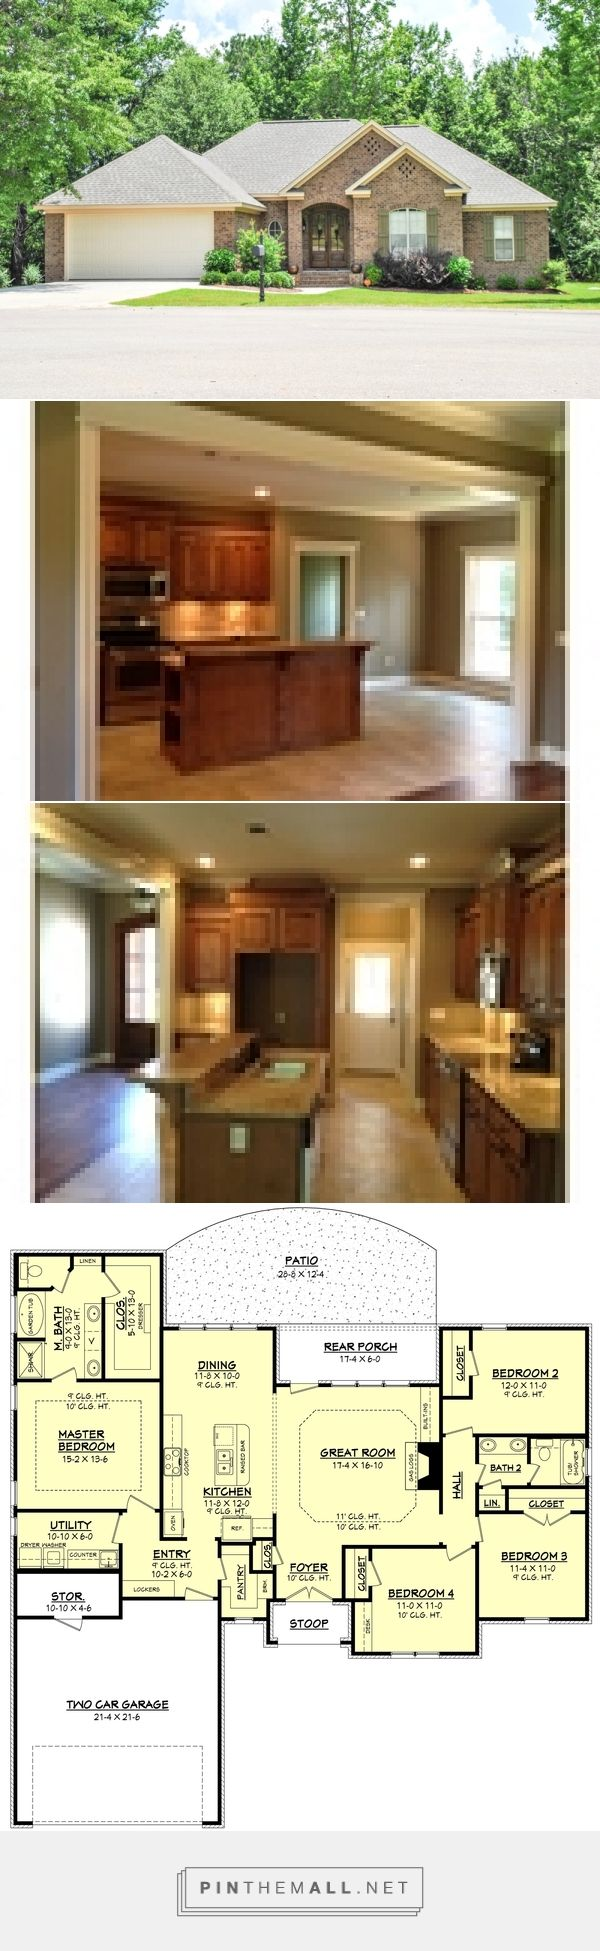 Traditional style house plan 4 beds 2 baths 1875 sqft plan 430